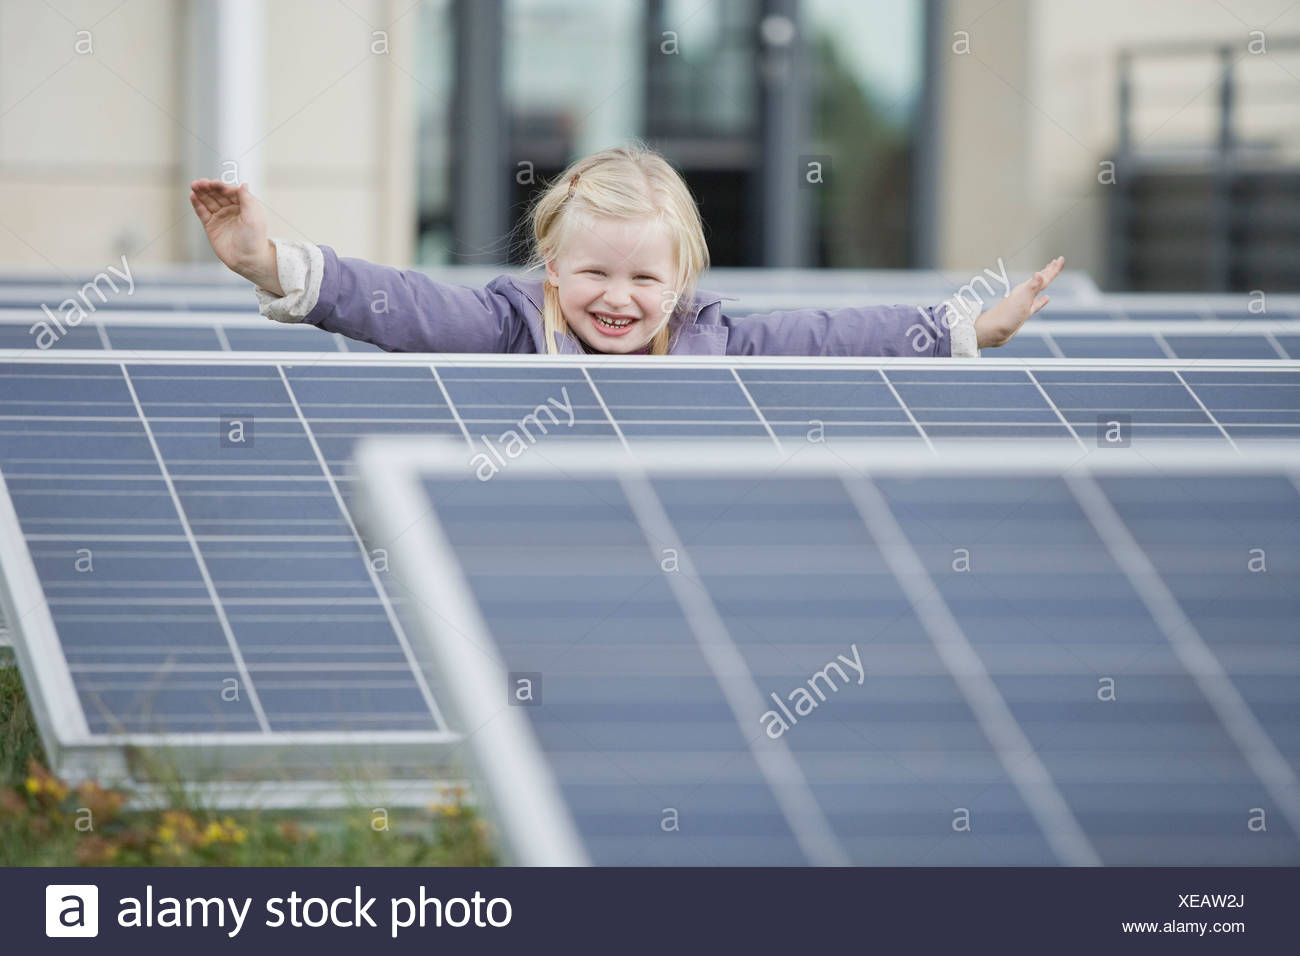 A young girl standing amongst solar panels - Stock Image